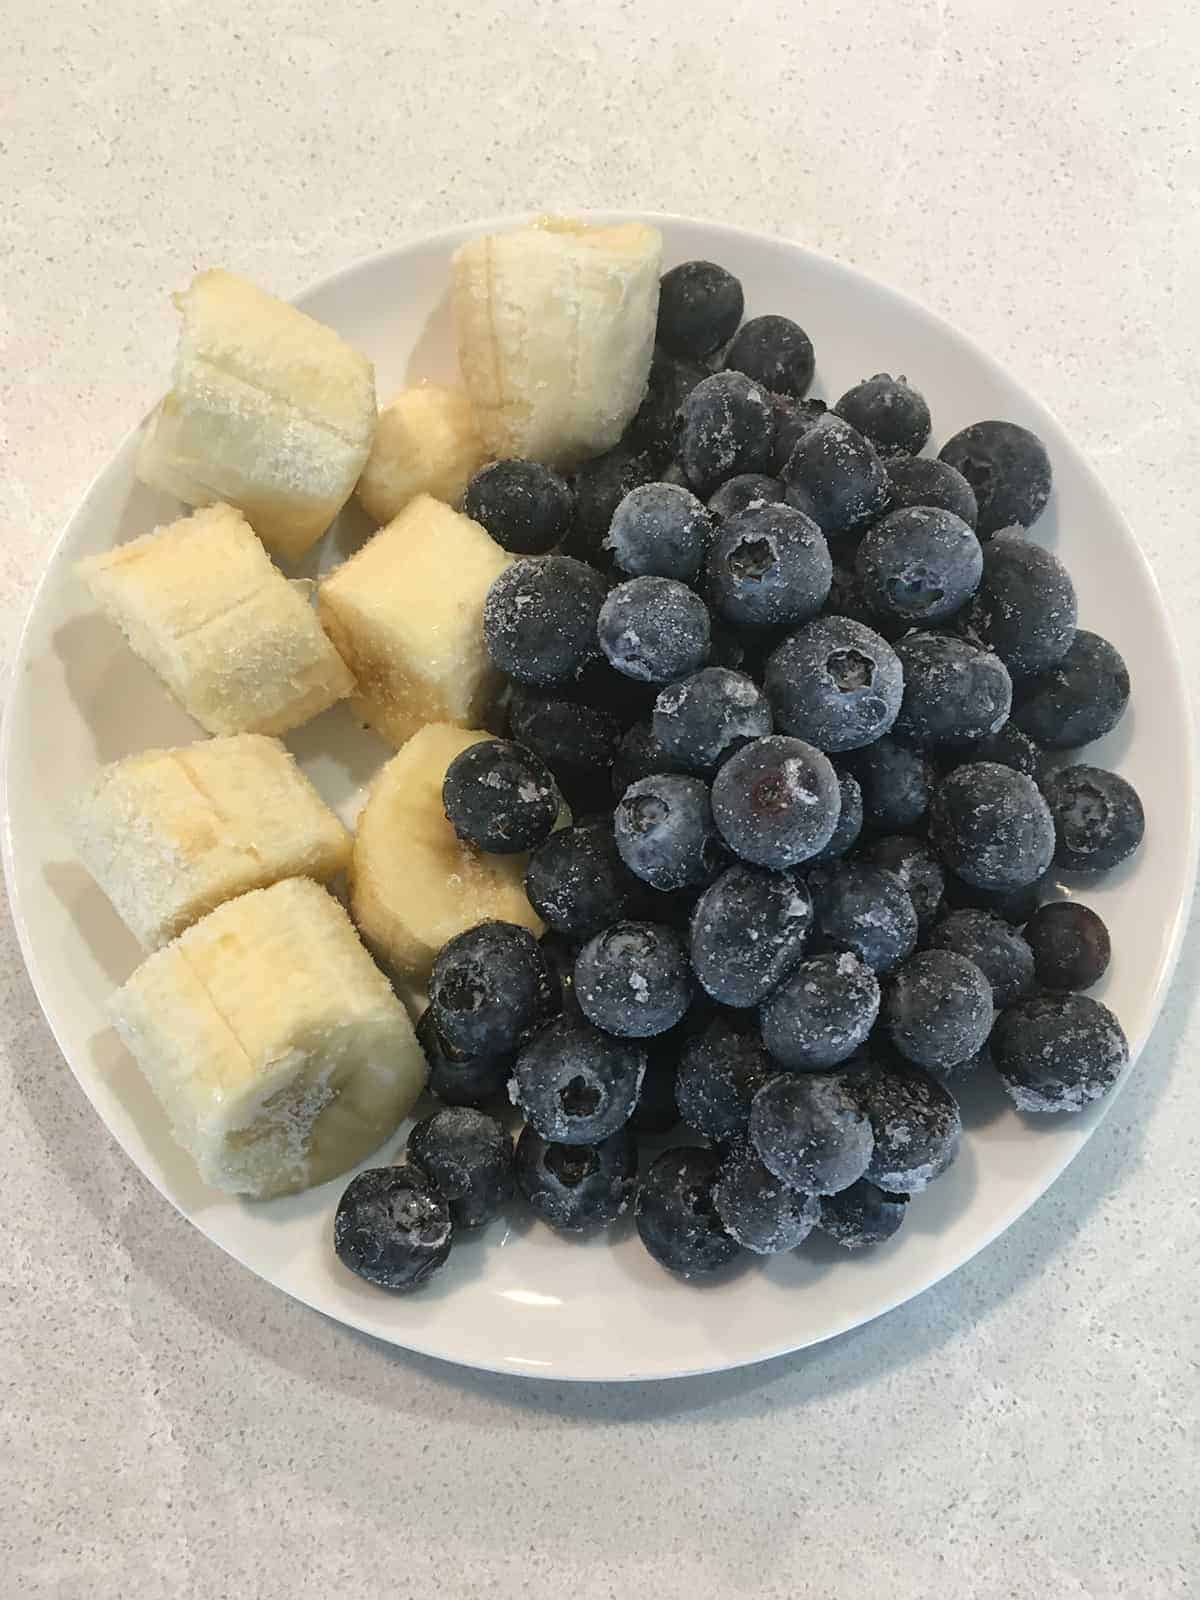 Chopped frozen banana chunks and frozen blueberries on a small white plate atop a light grey marble countertop